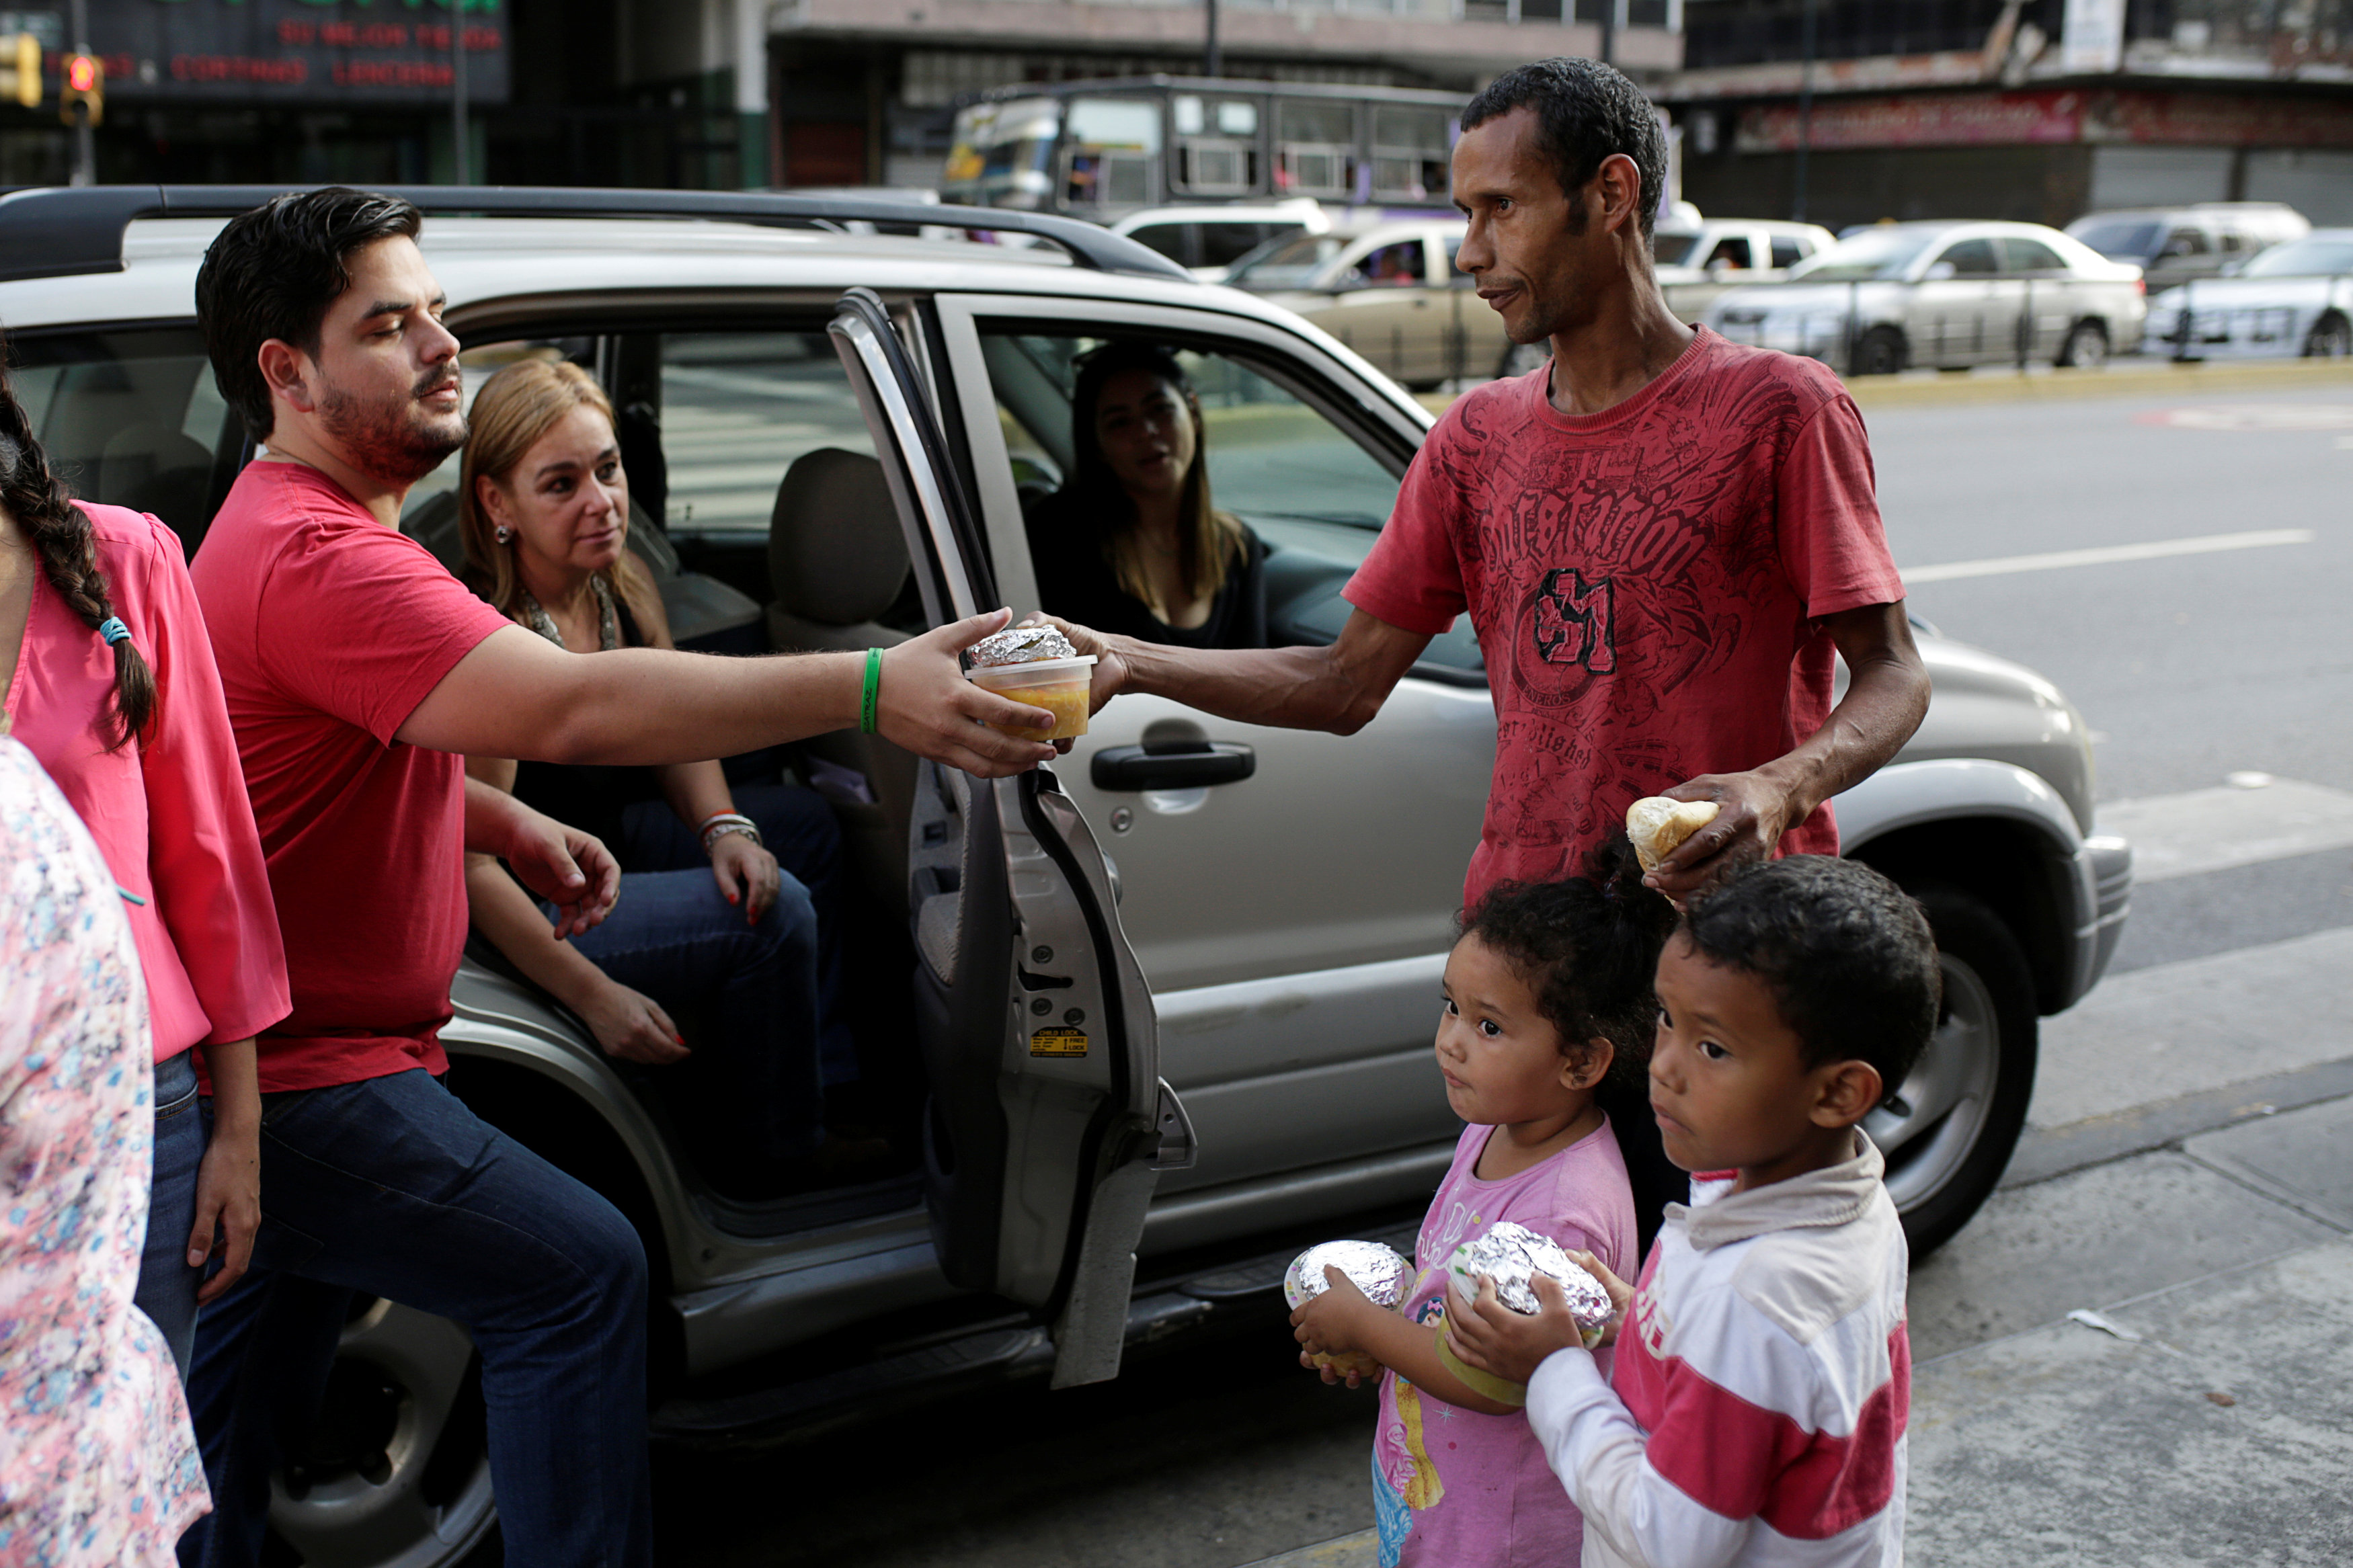 Diego Prada (L), a volunteer of the Make The Difference (Haz La Diferencia) charity initiative, gives a cup of soup and an arepa to a man in a street of Caracas, Venezuela March12, 2017. Picture taken March 12, 2017. REUTERS/Marco Bello